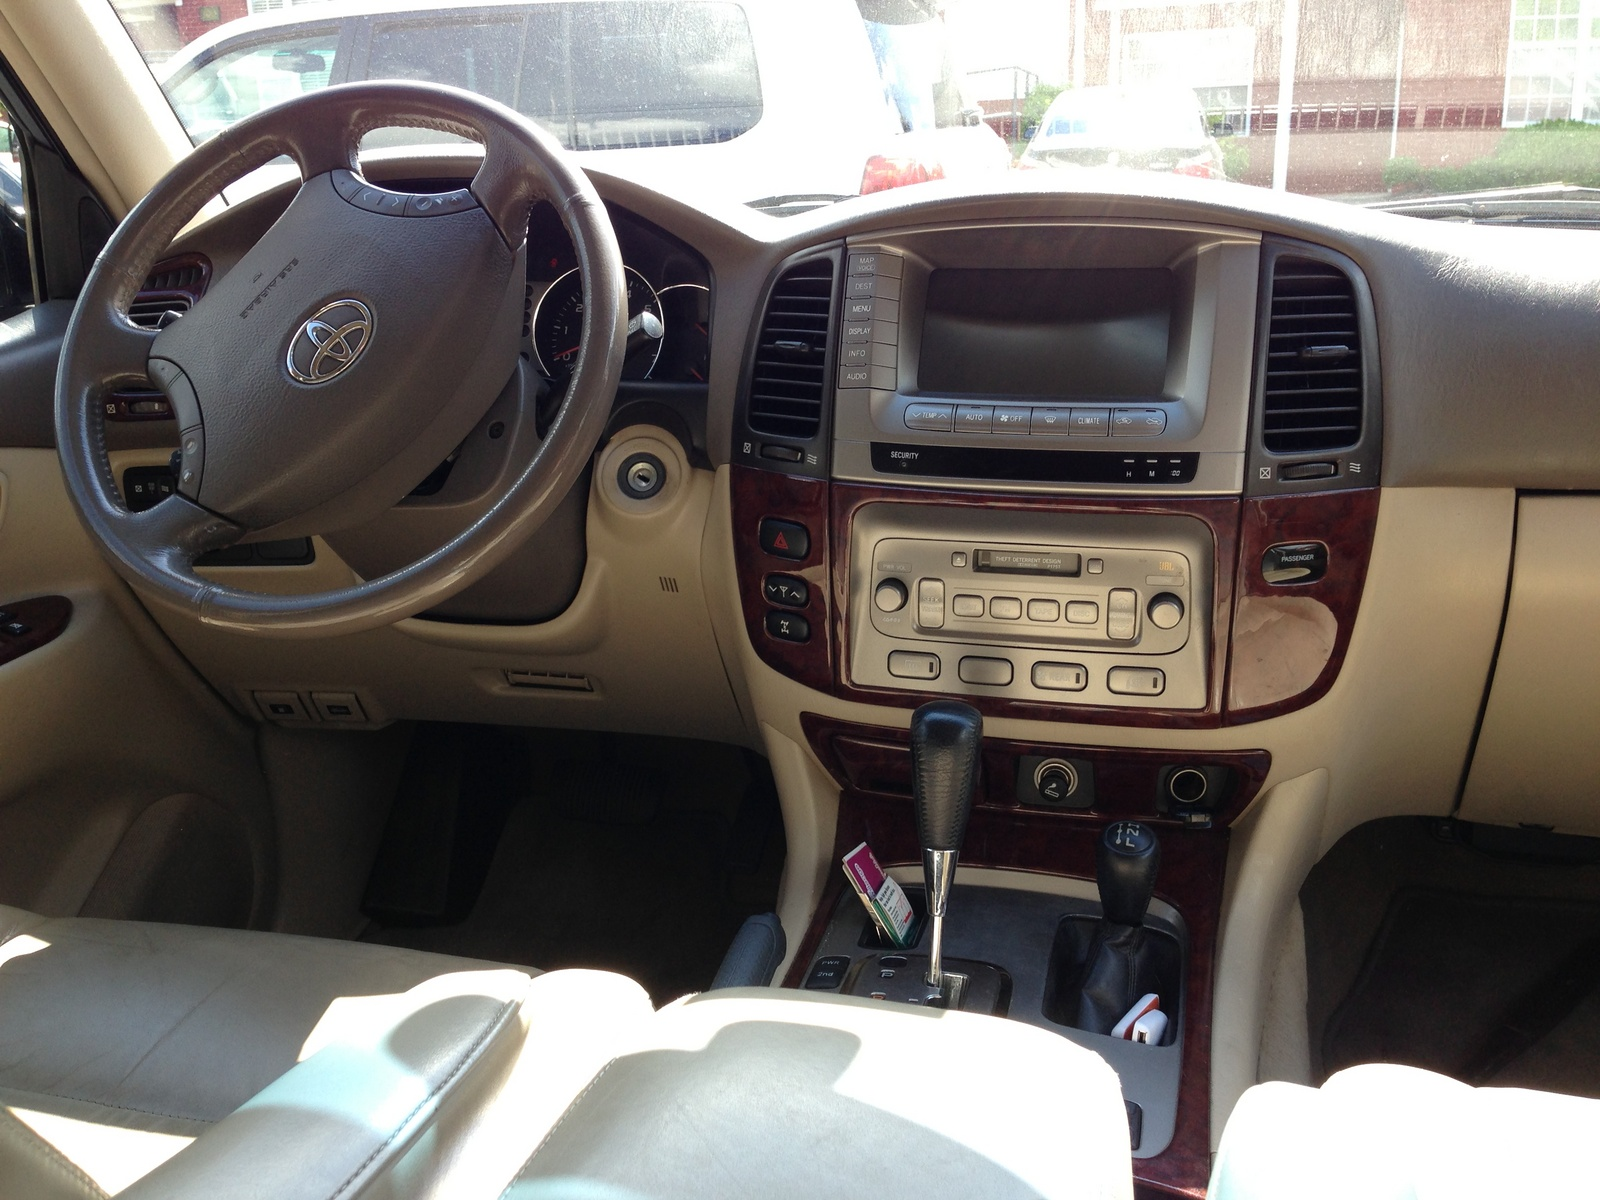 2005 Toyota Land Cruiser 100 Pictures Information And Specs Interior Pics 15